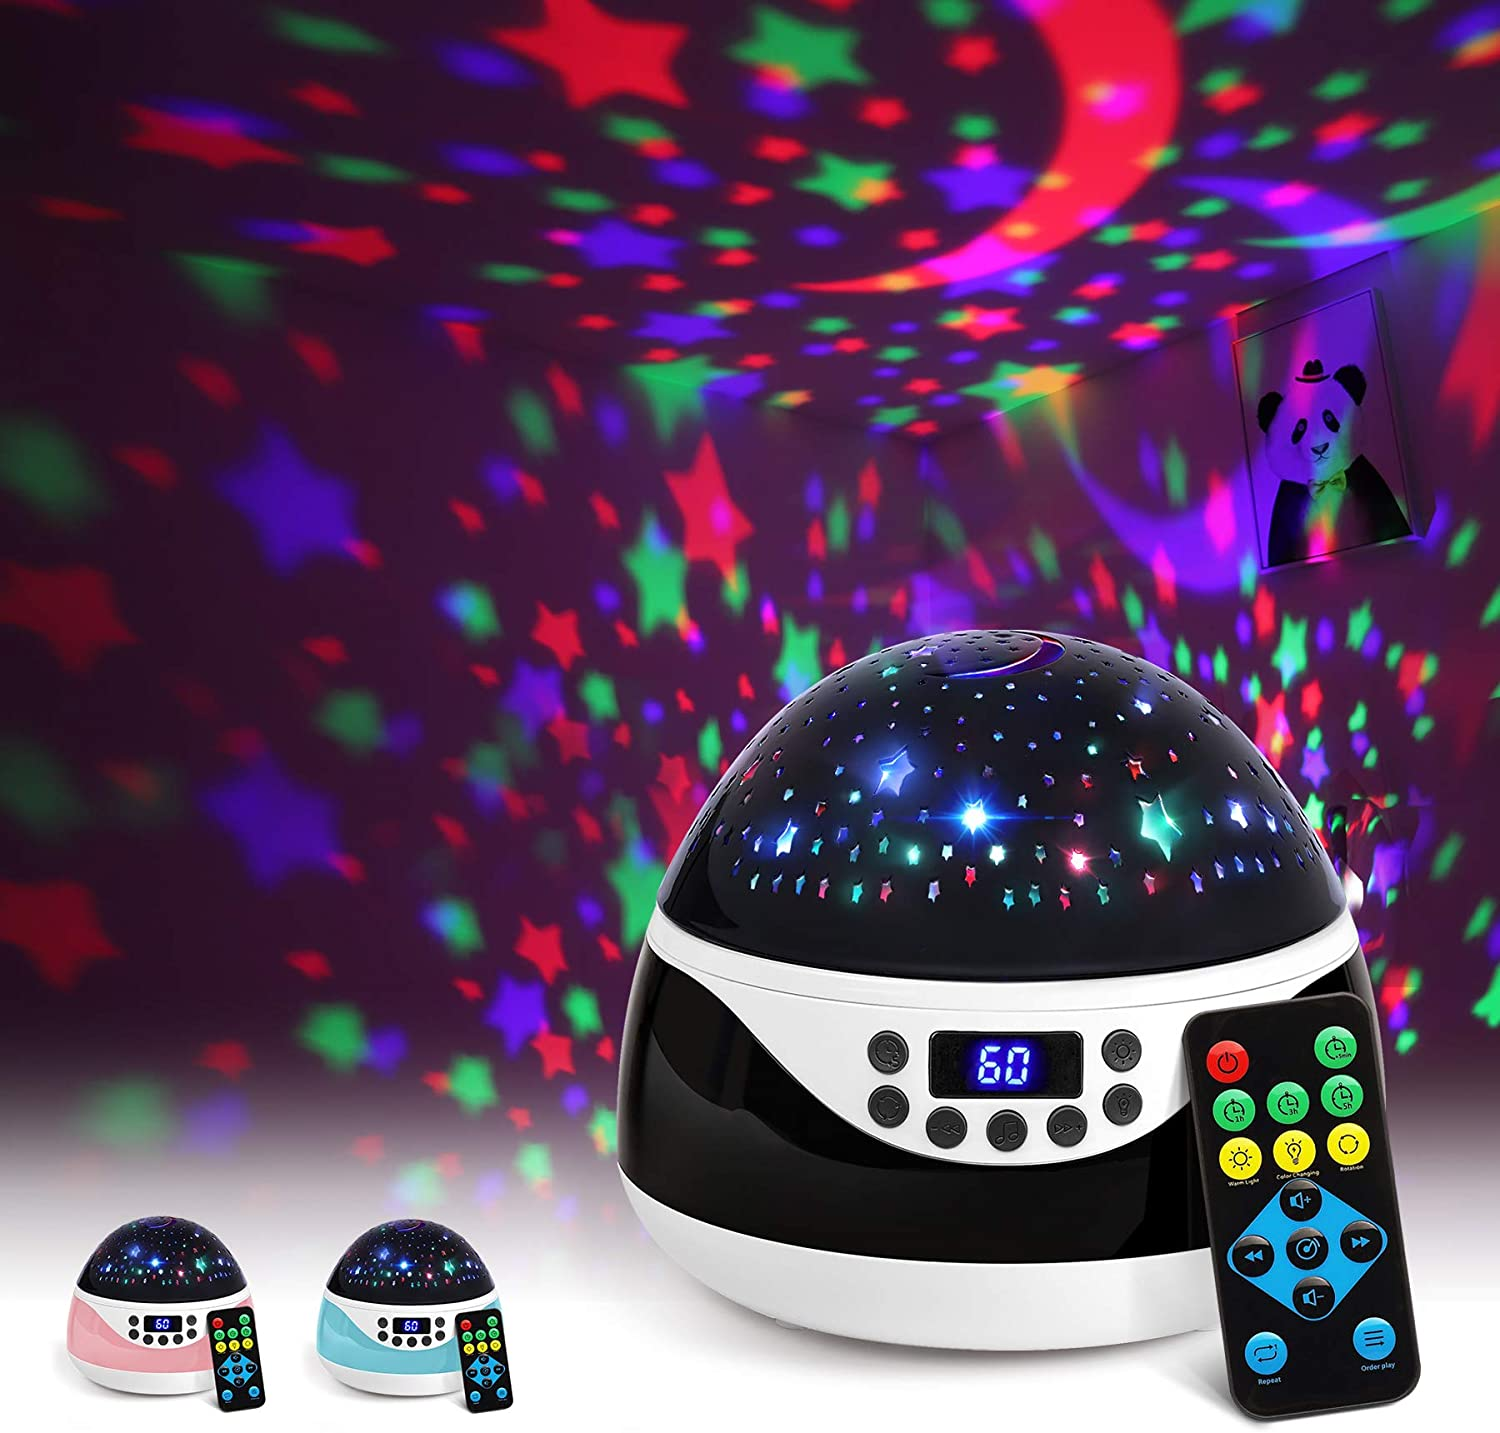 2019 Newest Baby Night Light, AnanBros Remote Control Star Projector with Timer Music Player, Rotating Star Night Light 9 Color Options, Best Night Lights for Kids Adults and Nursery Decor sleep music - 71J3fU7V3KL - Sleep Music – Recommendable music gadgets for your family's good sleep